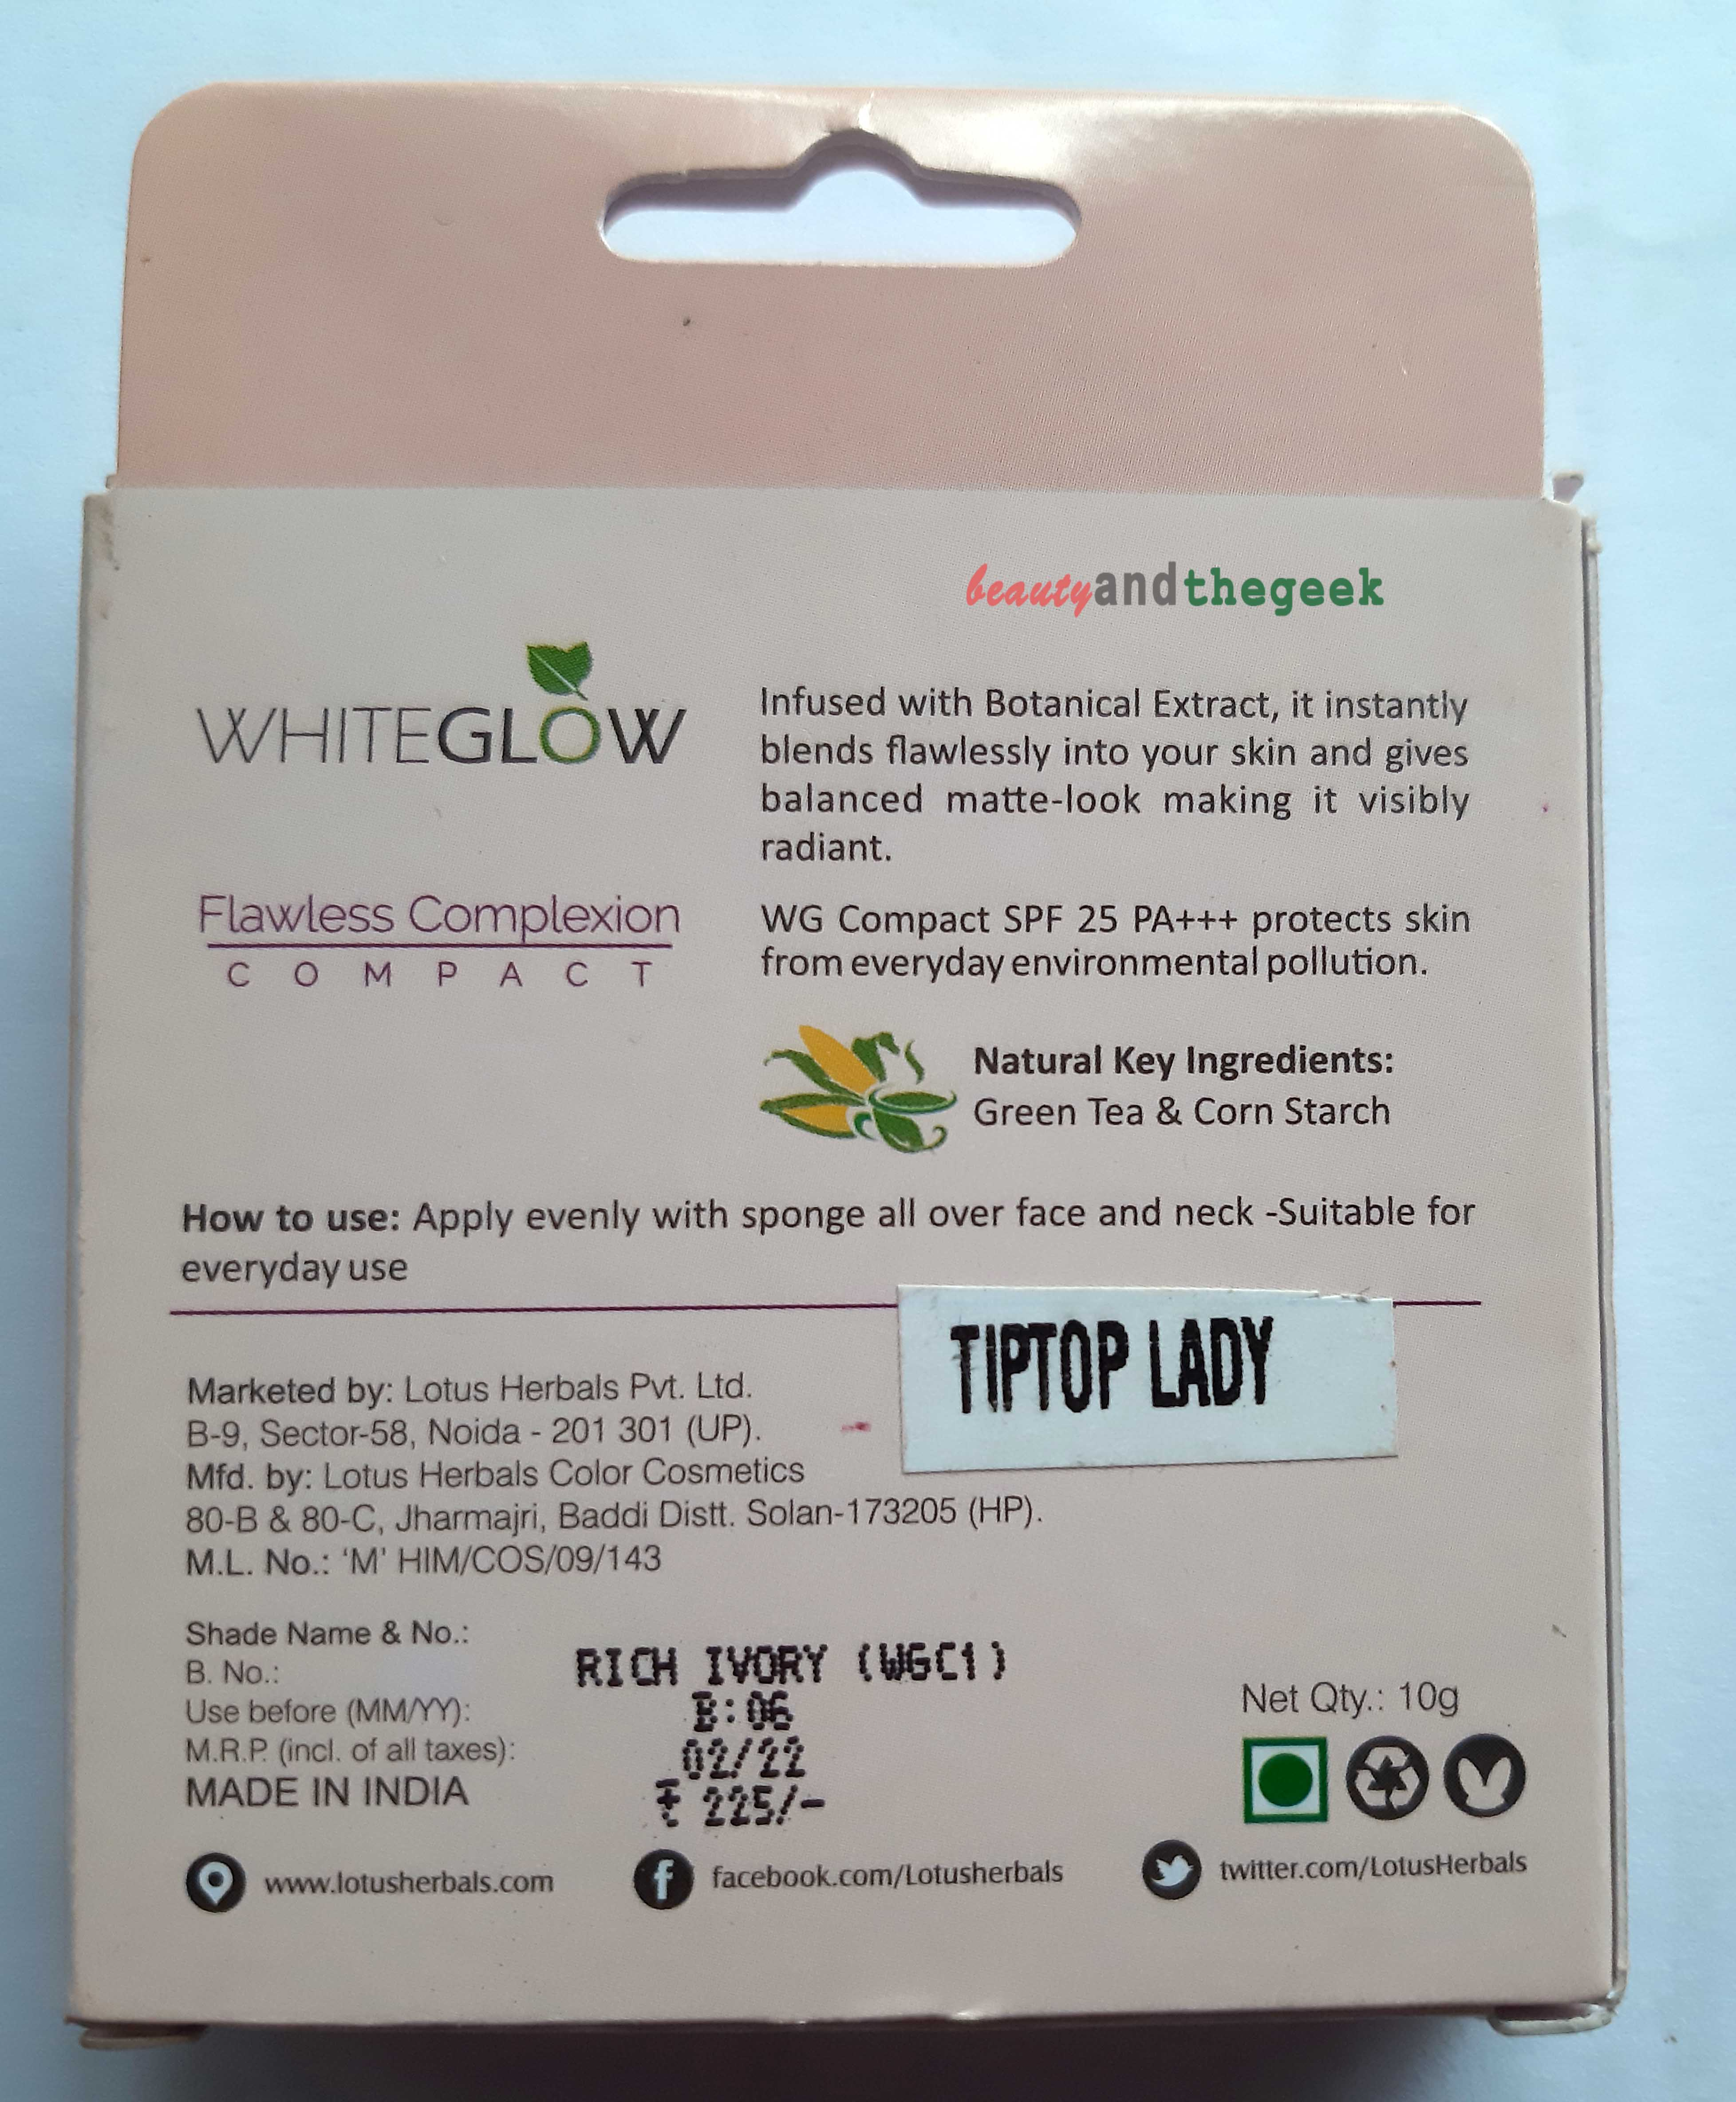 Lotus Herbals WhiteGlow Flawless Complexion Compact Powder claims